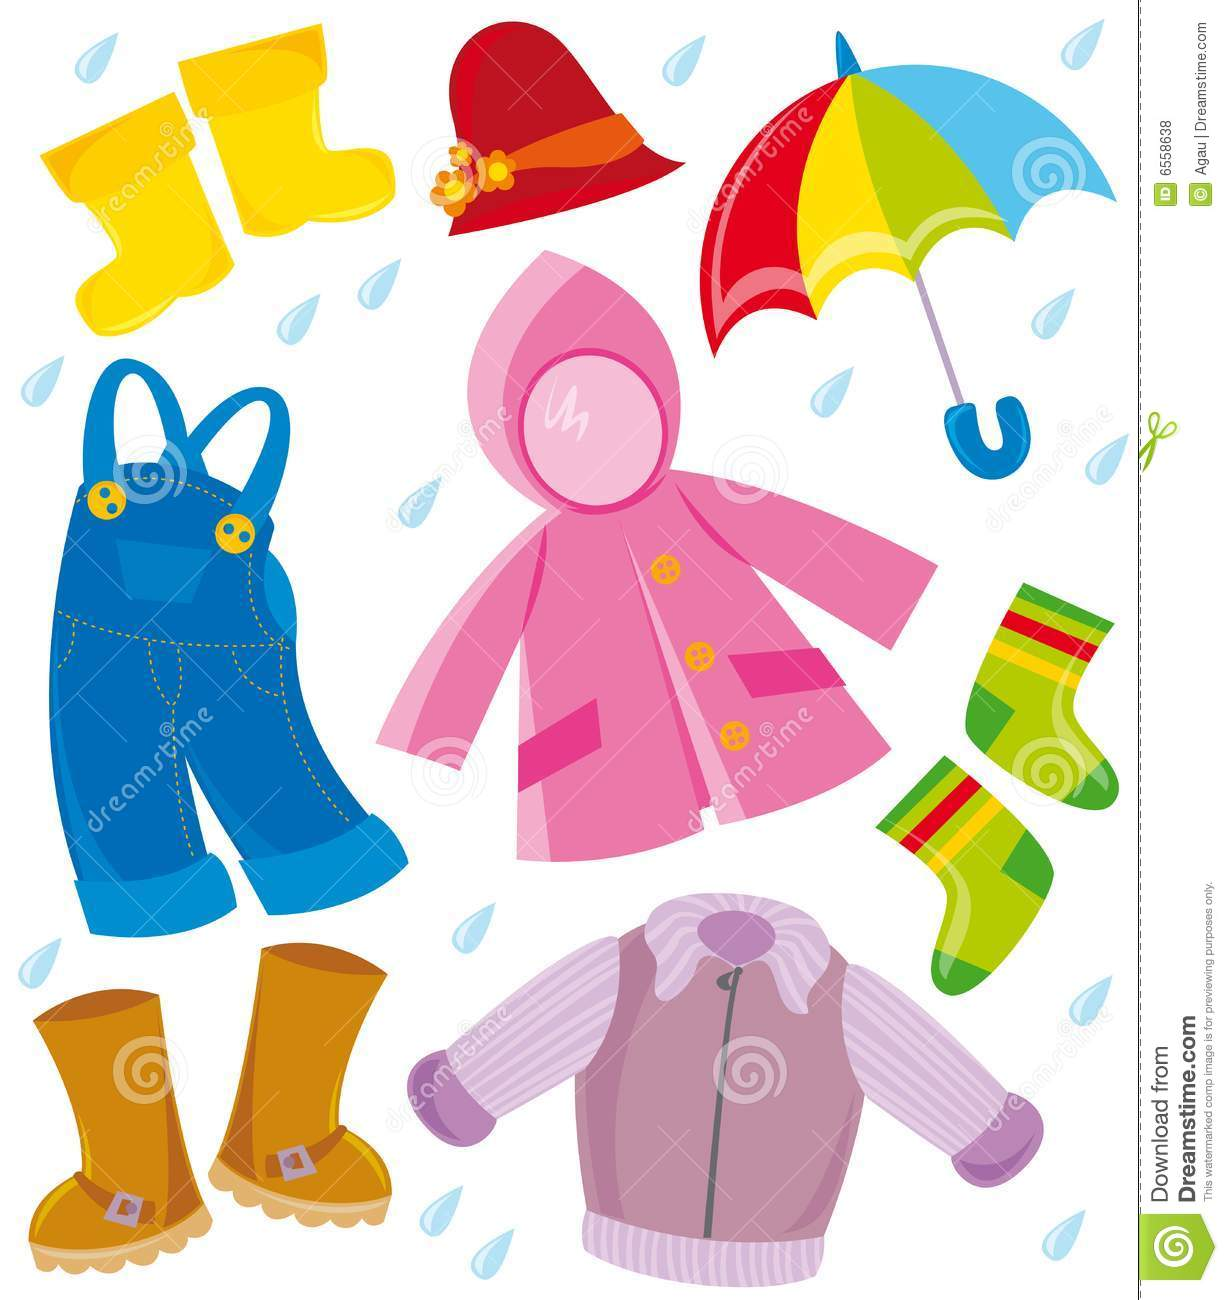 Summer clothes clipart 6 » Clipart Station.